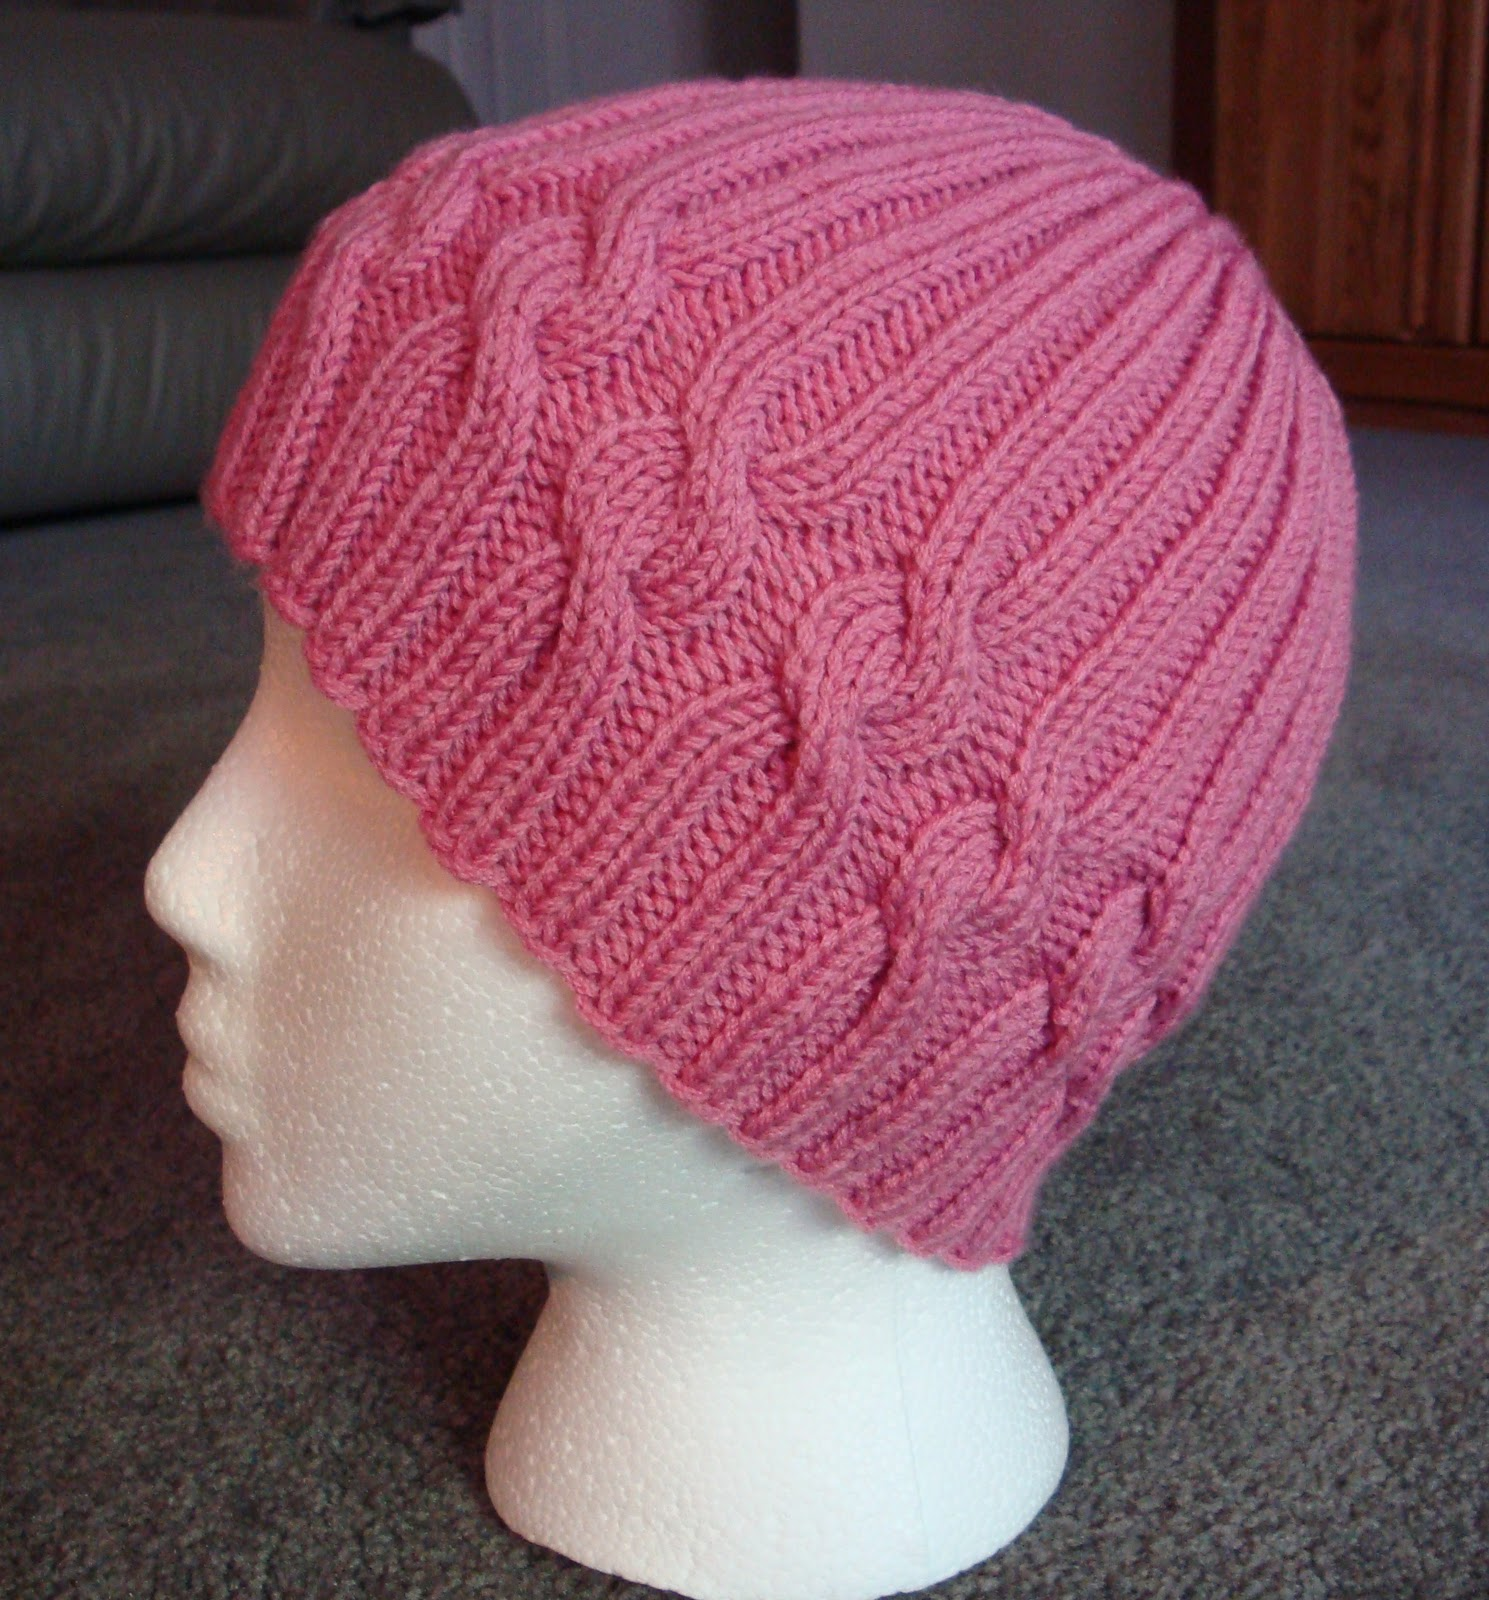 Knitting Patterns Free Download Hats : Kims Knitting Korner: FREE: Ribbons of Hope Hat Pattern